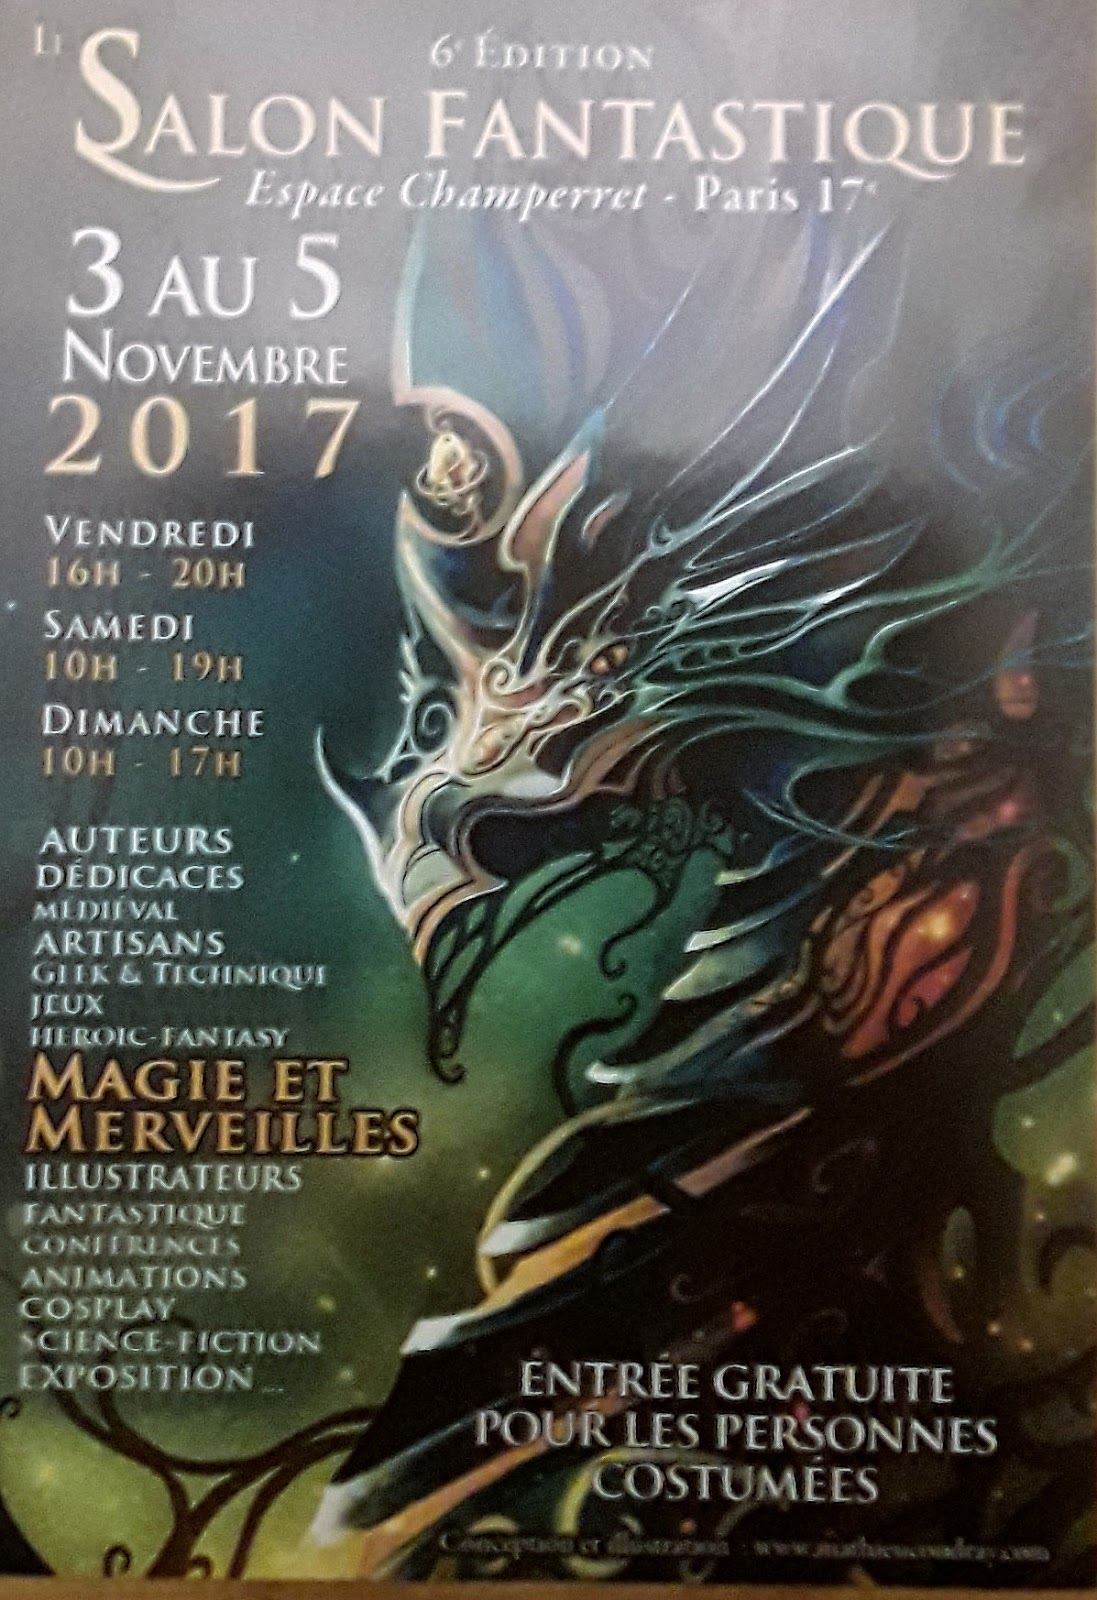 Salon Fantastique Paris Mes Aventures Livresques Salon Fantastique 2017